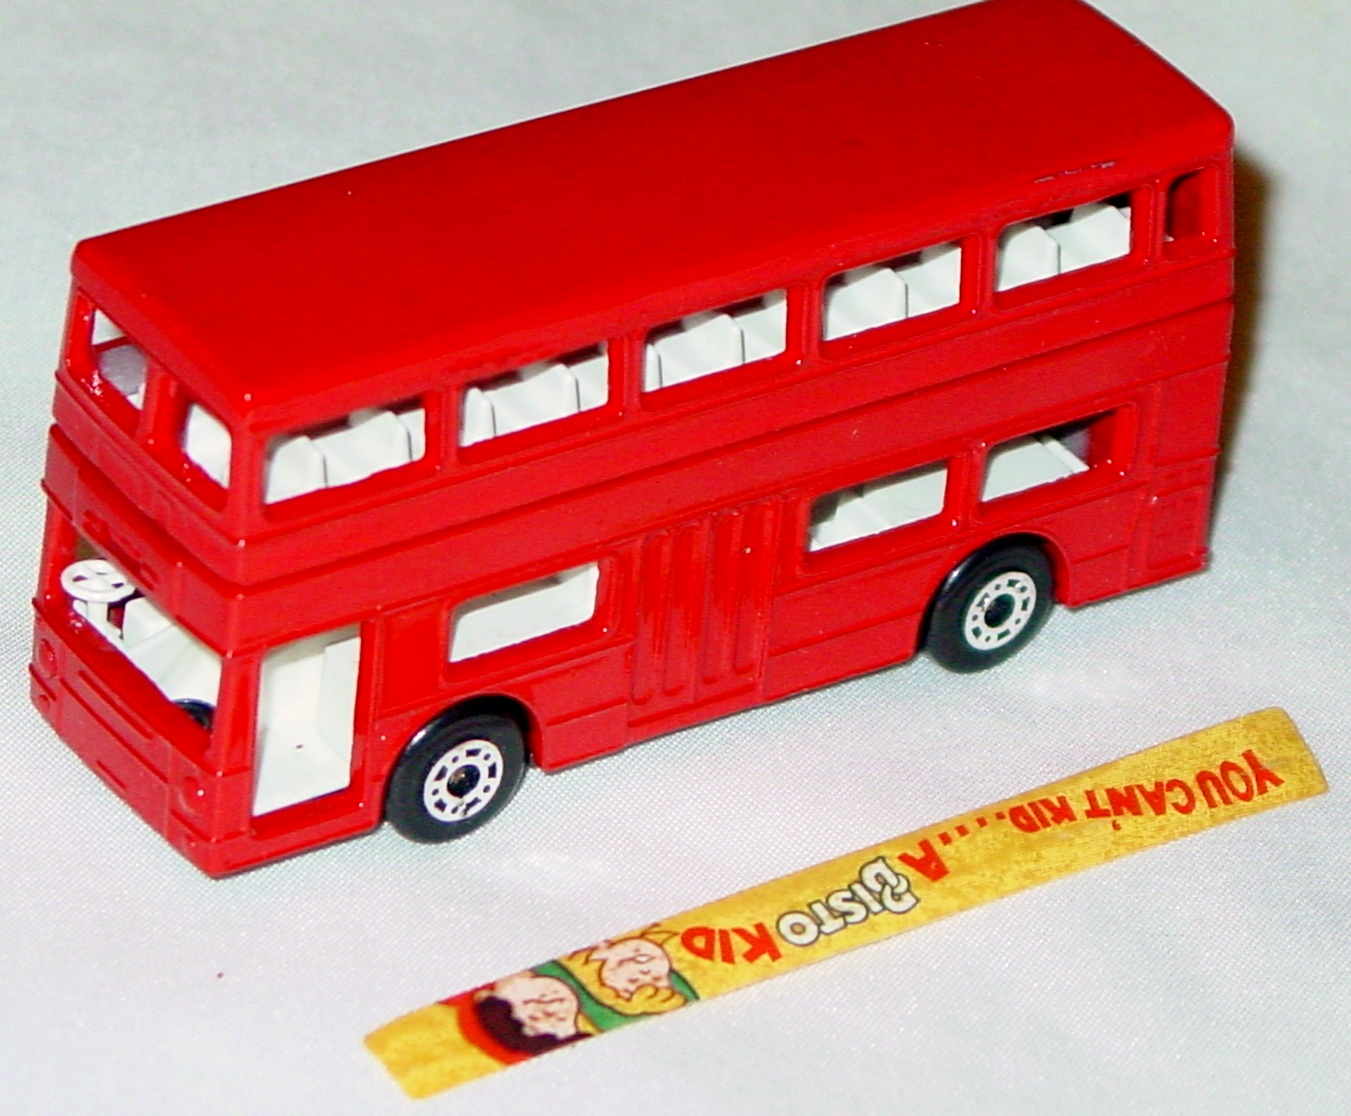 Lesney SuperFast 17 B - Titan Bus Red Bisto -1 label 1 missing